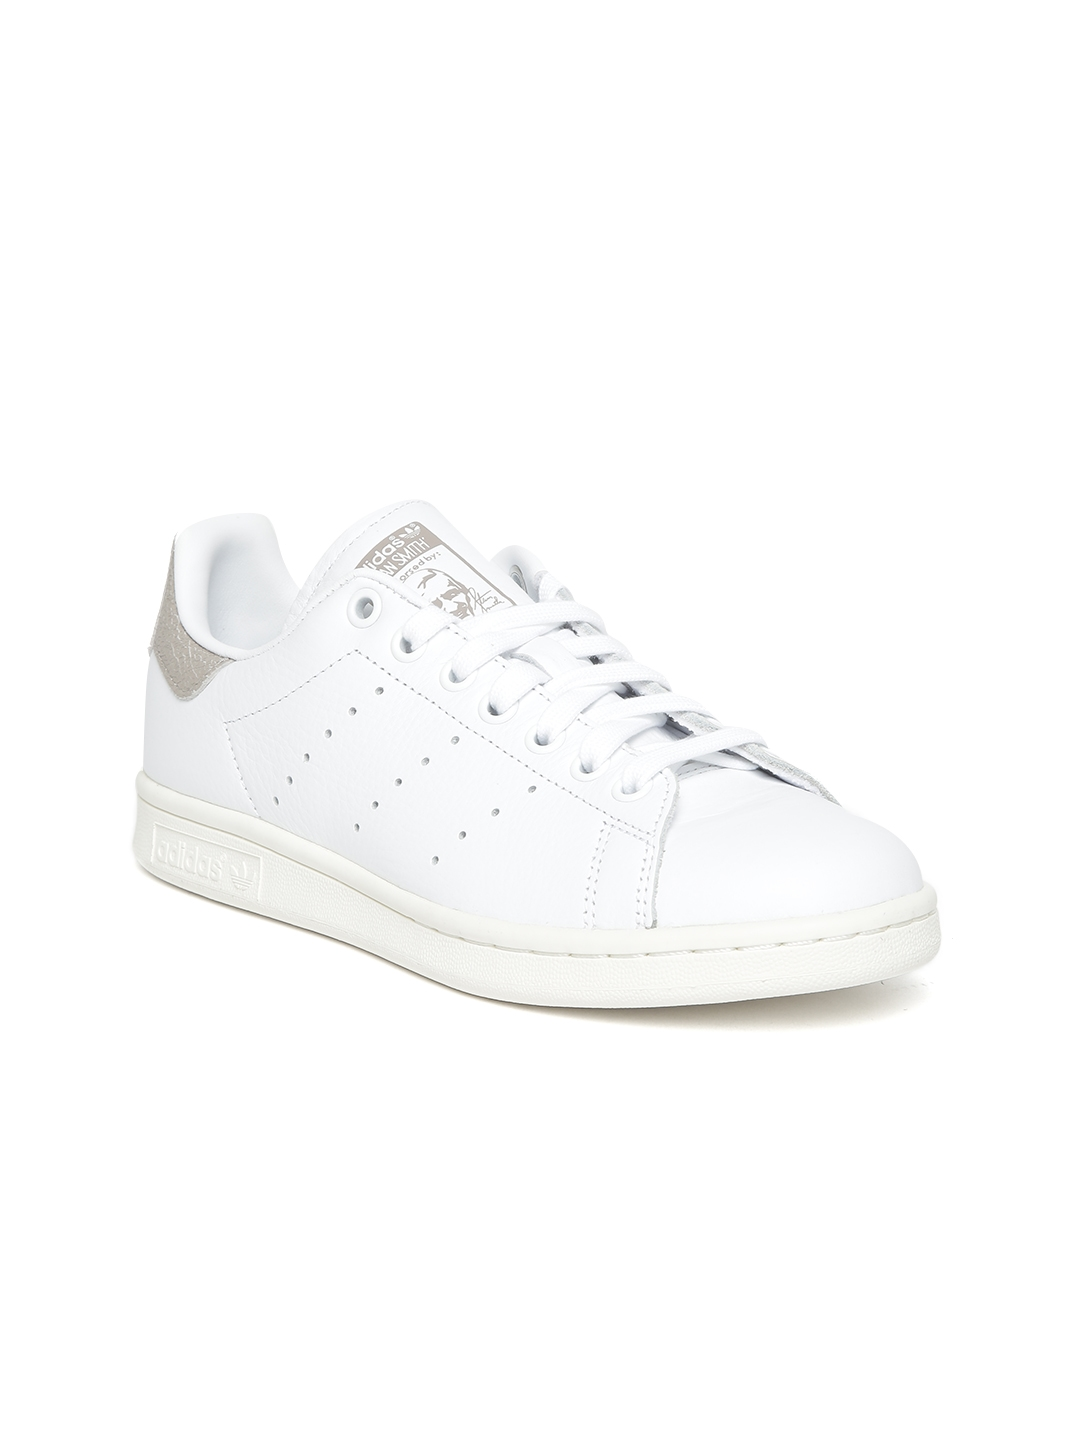 Buy Adidas Originals Women White Stan Smith Leather Sneakers ... 3a5f6aee6f